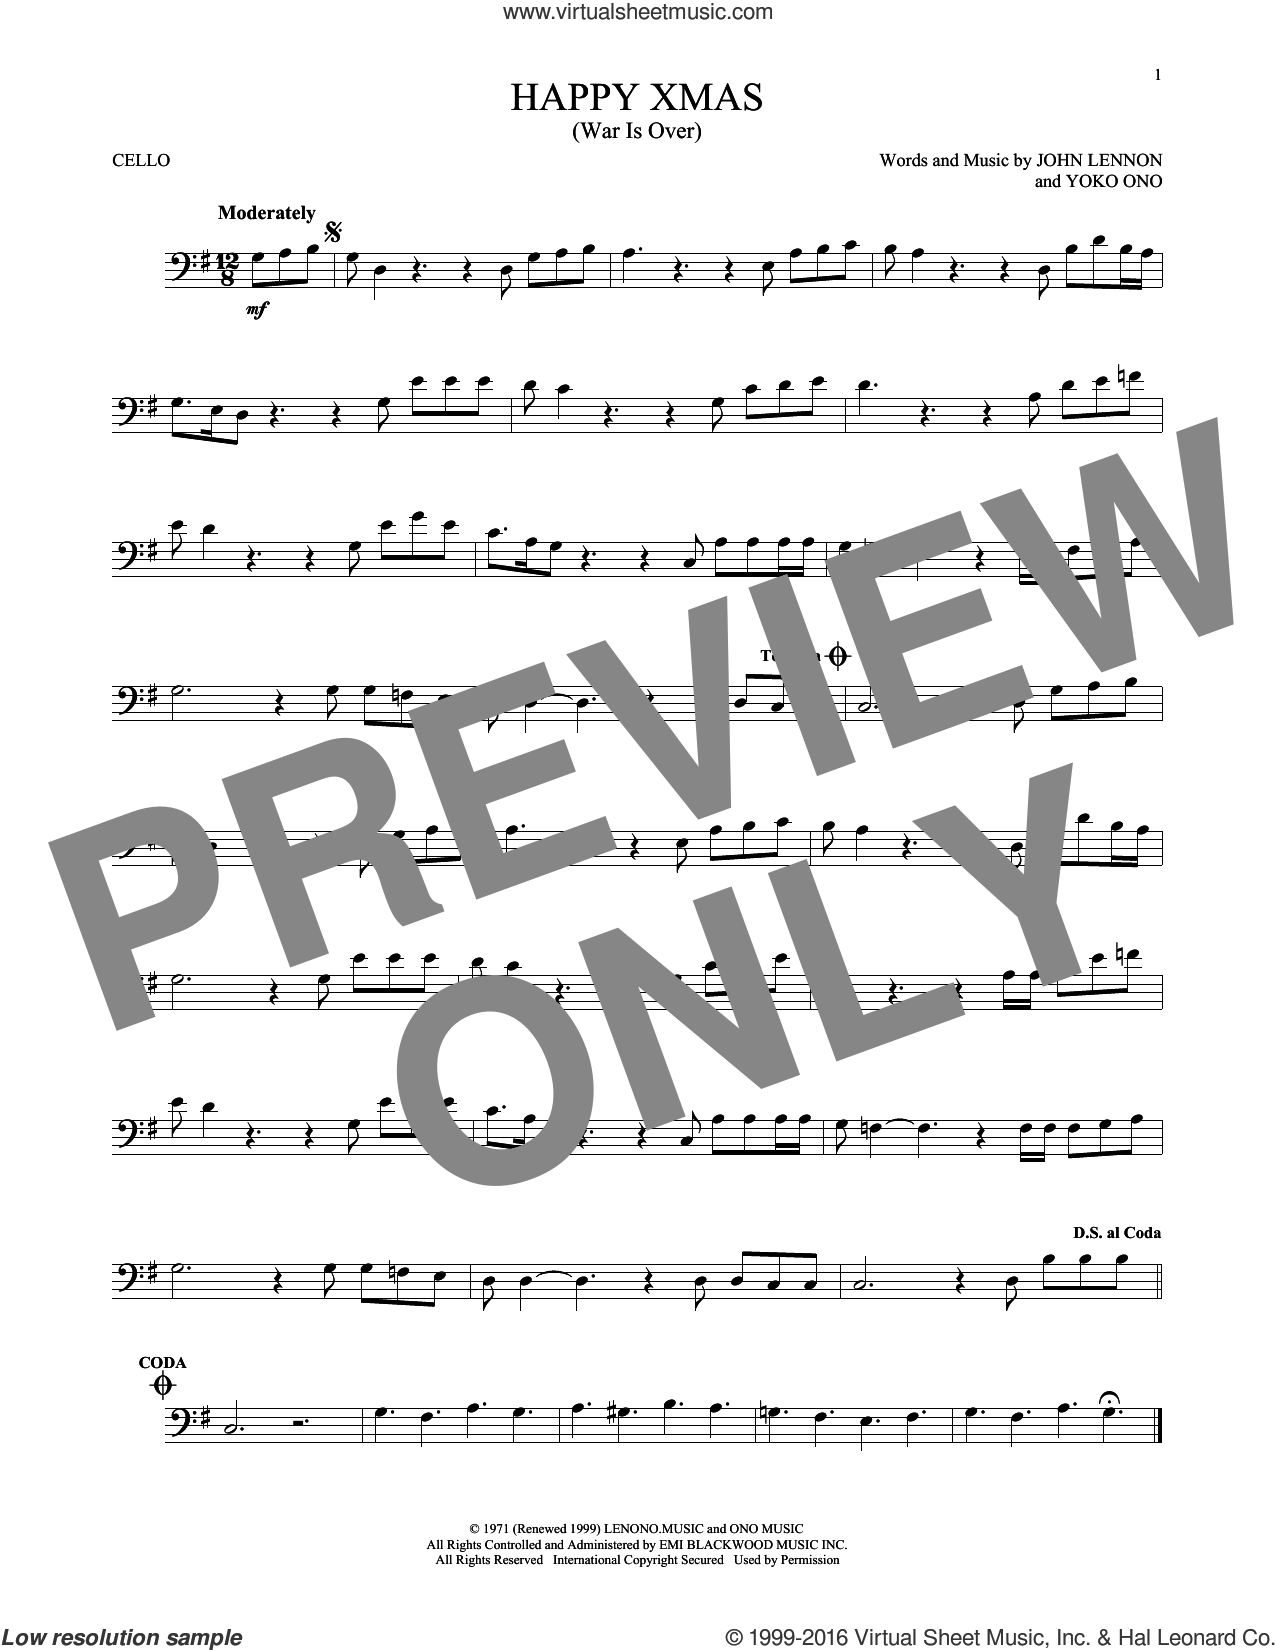 Happy Xmas (War Is Over) sheet music for cello solo by John Lennon and Yoko Ono, intermediate skill level